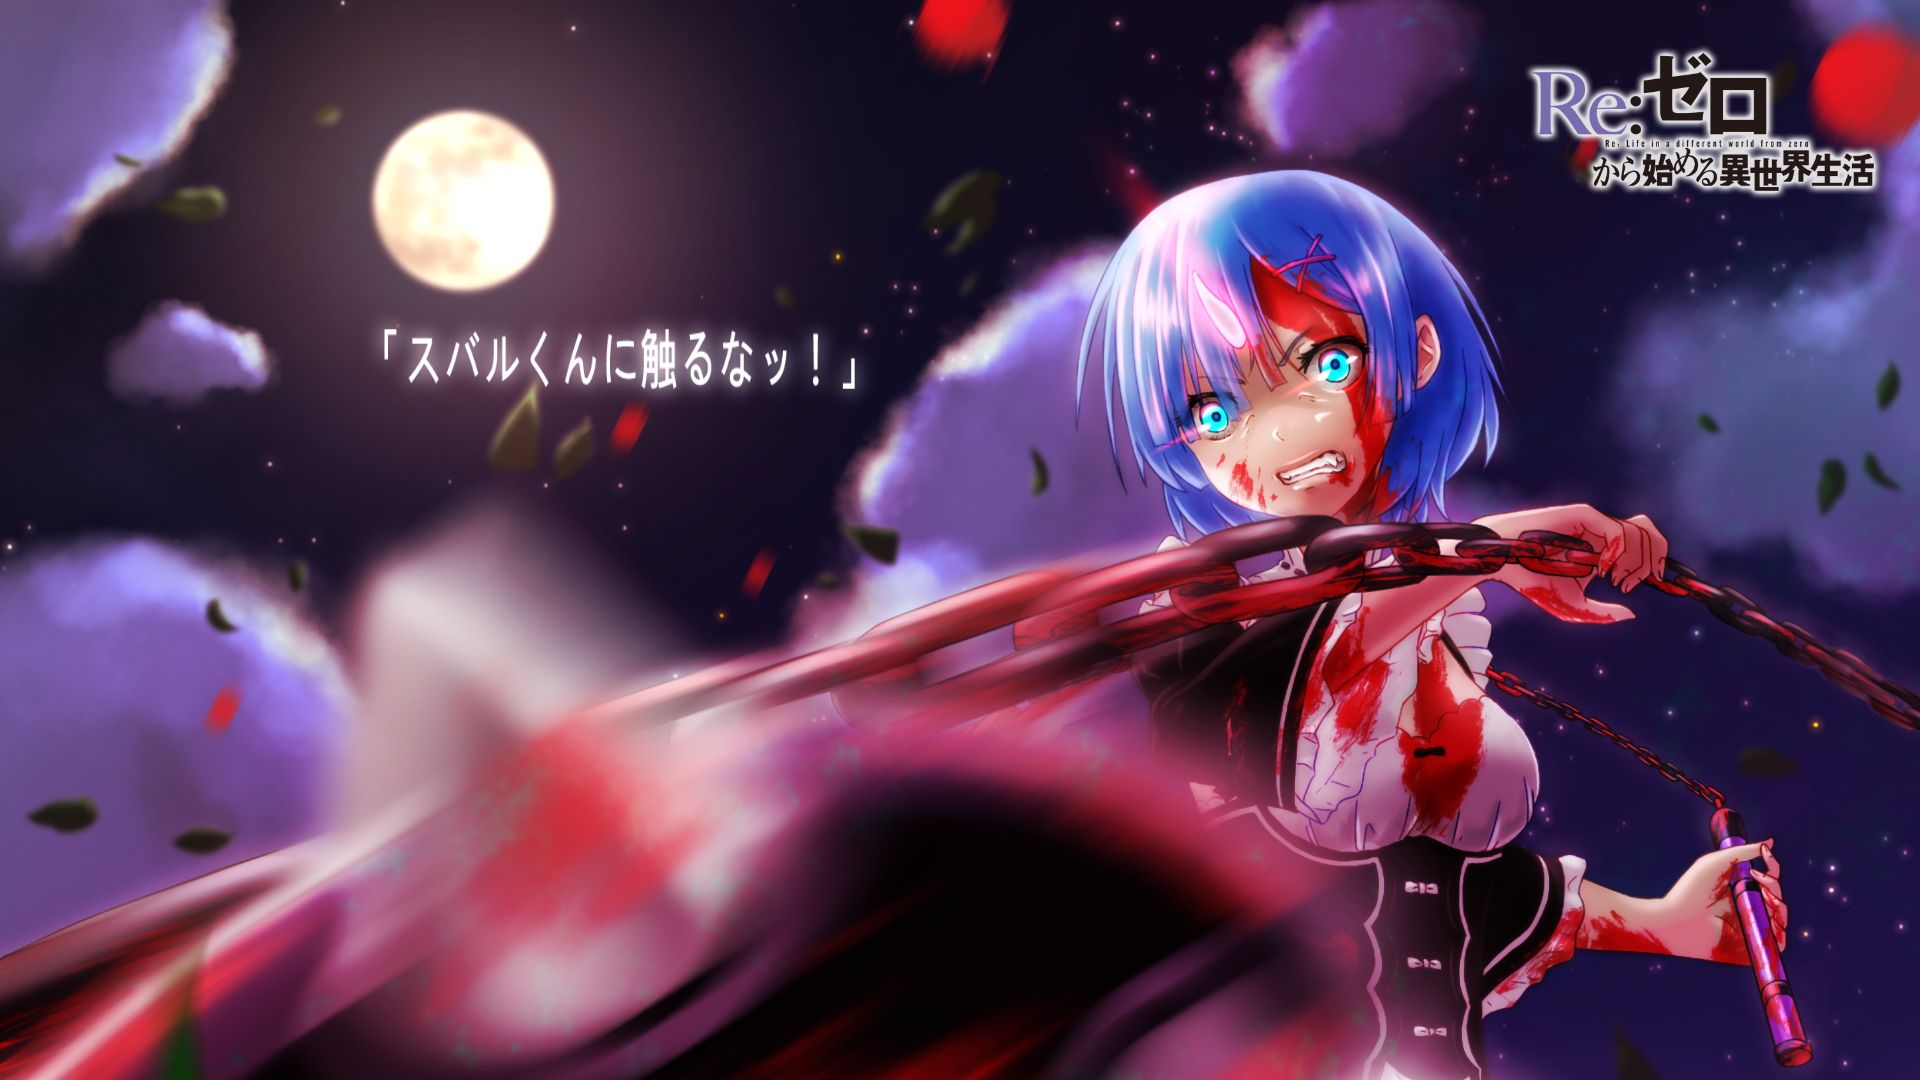 Pin by Furyaid on Rem Movie posters, Anime, Movies